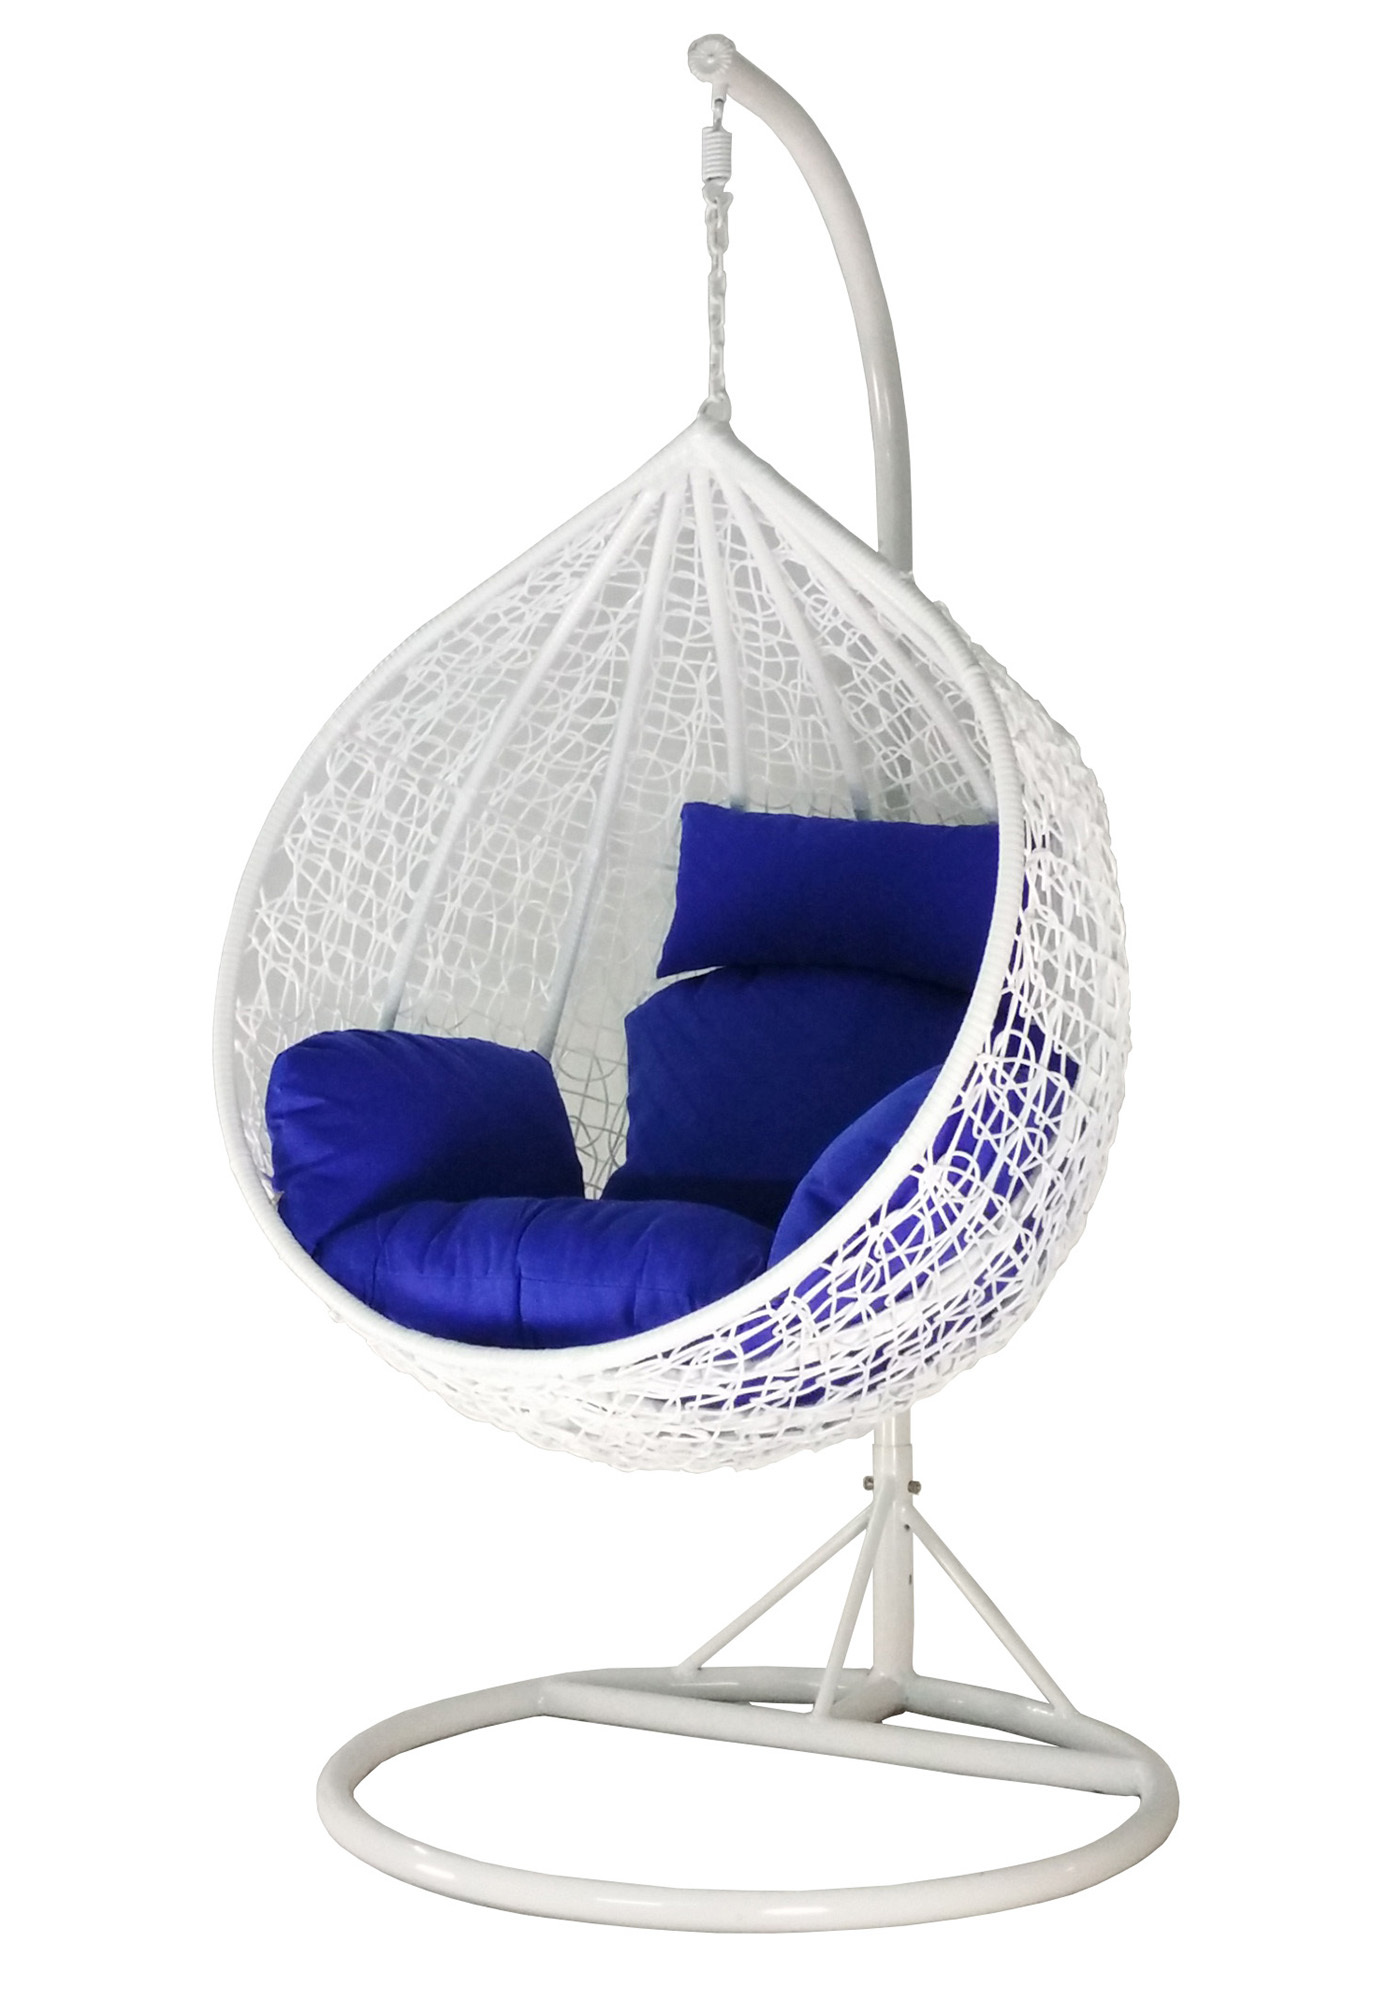 amber initial white rattan swing chair with blue cushion cover